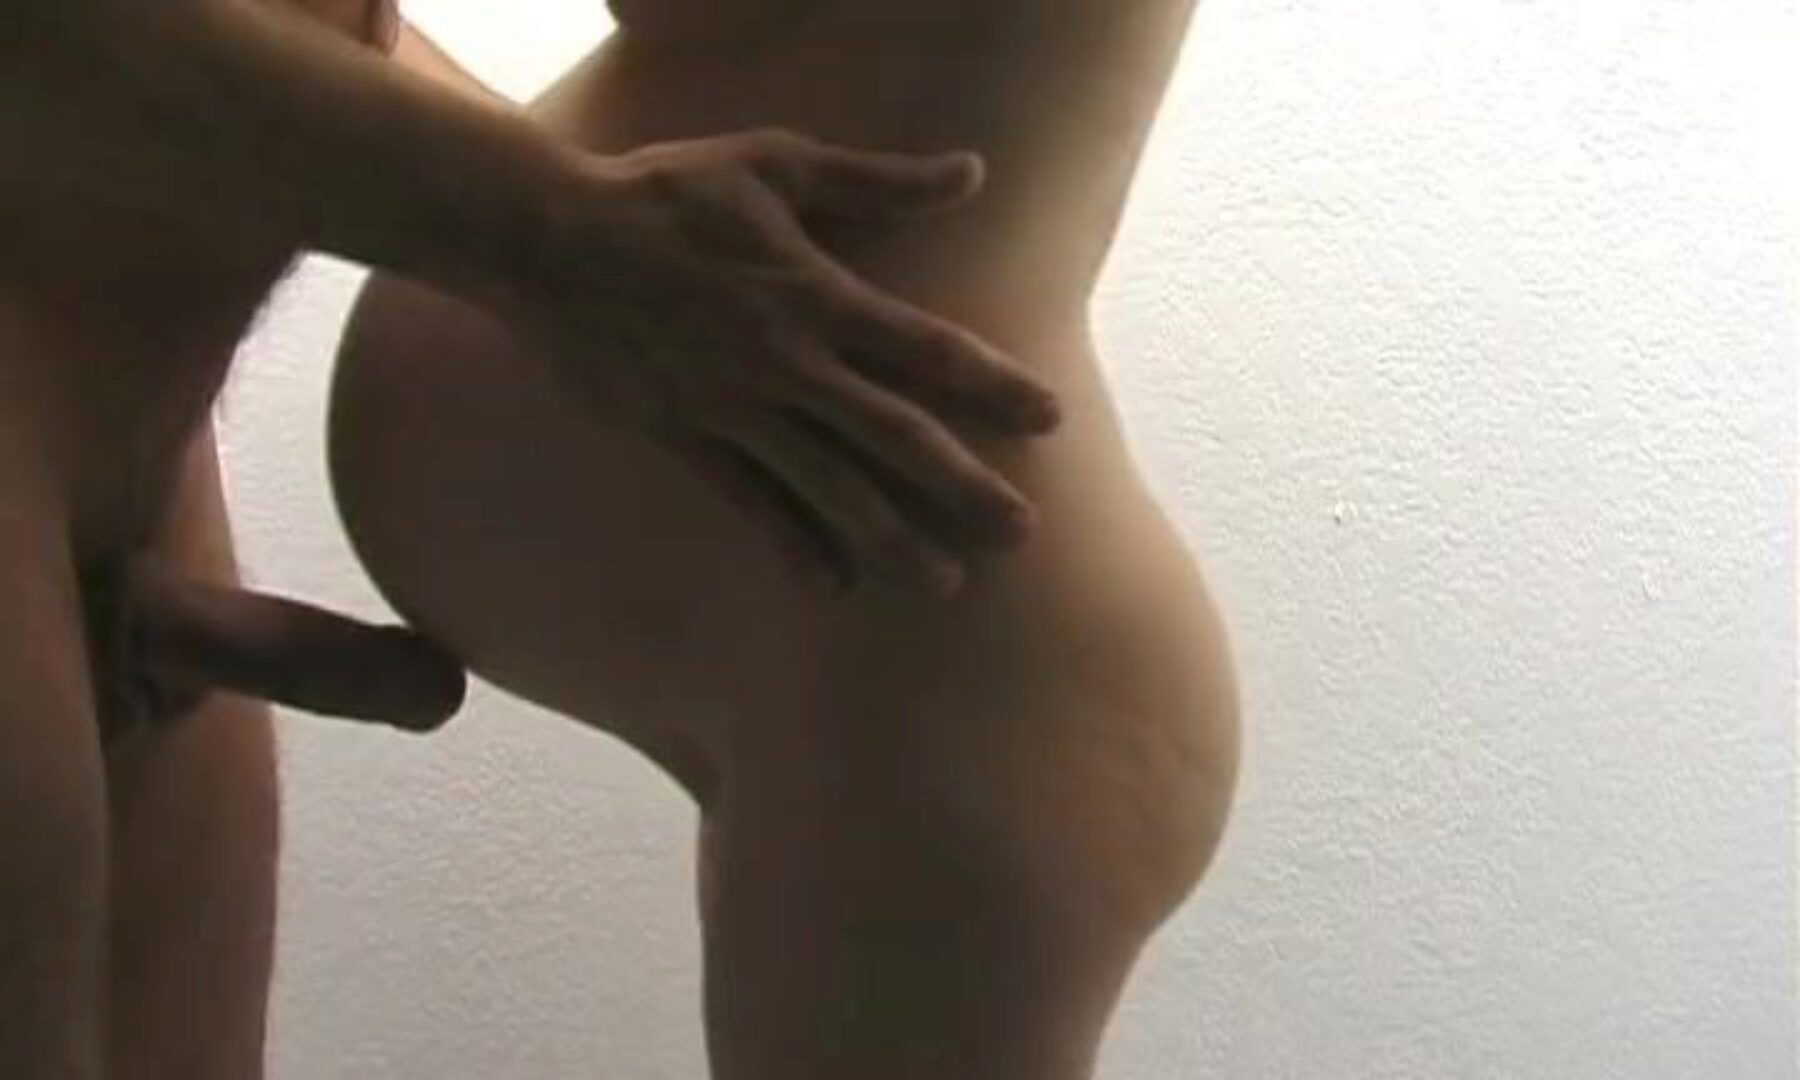 Quickie with preggy wife Quickie with my pregnant wife